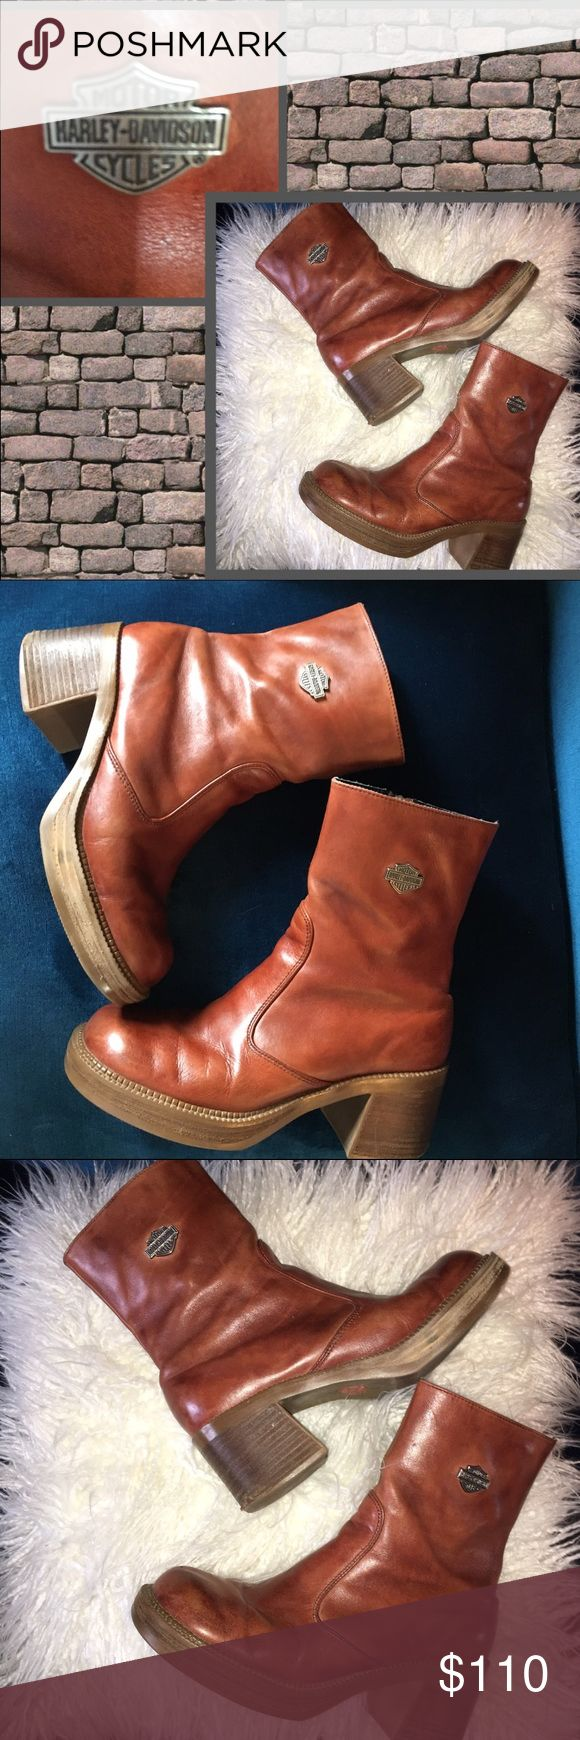 """HARLEY DAVIDSON WOMENS BIKER BOOTS 🕶RARE🕶Harley Davidson women's leather 100% Authentic biker boots. These vintage indestructible the way boots should be constructed amazing soft leather HD logo on outside of boots, 2"""" wooden and leather heel, side zipper, left boot zipper is missing HD logo that hangs off zipper. (Pictured)  sure you could order one. Great condition (look better now than when new) brown cognac color. Rare find. Harley-Davidson Shoes Combat & Moto Boots"""